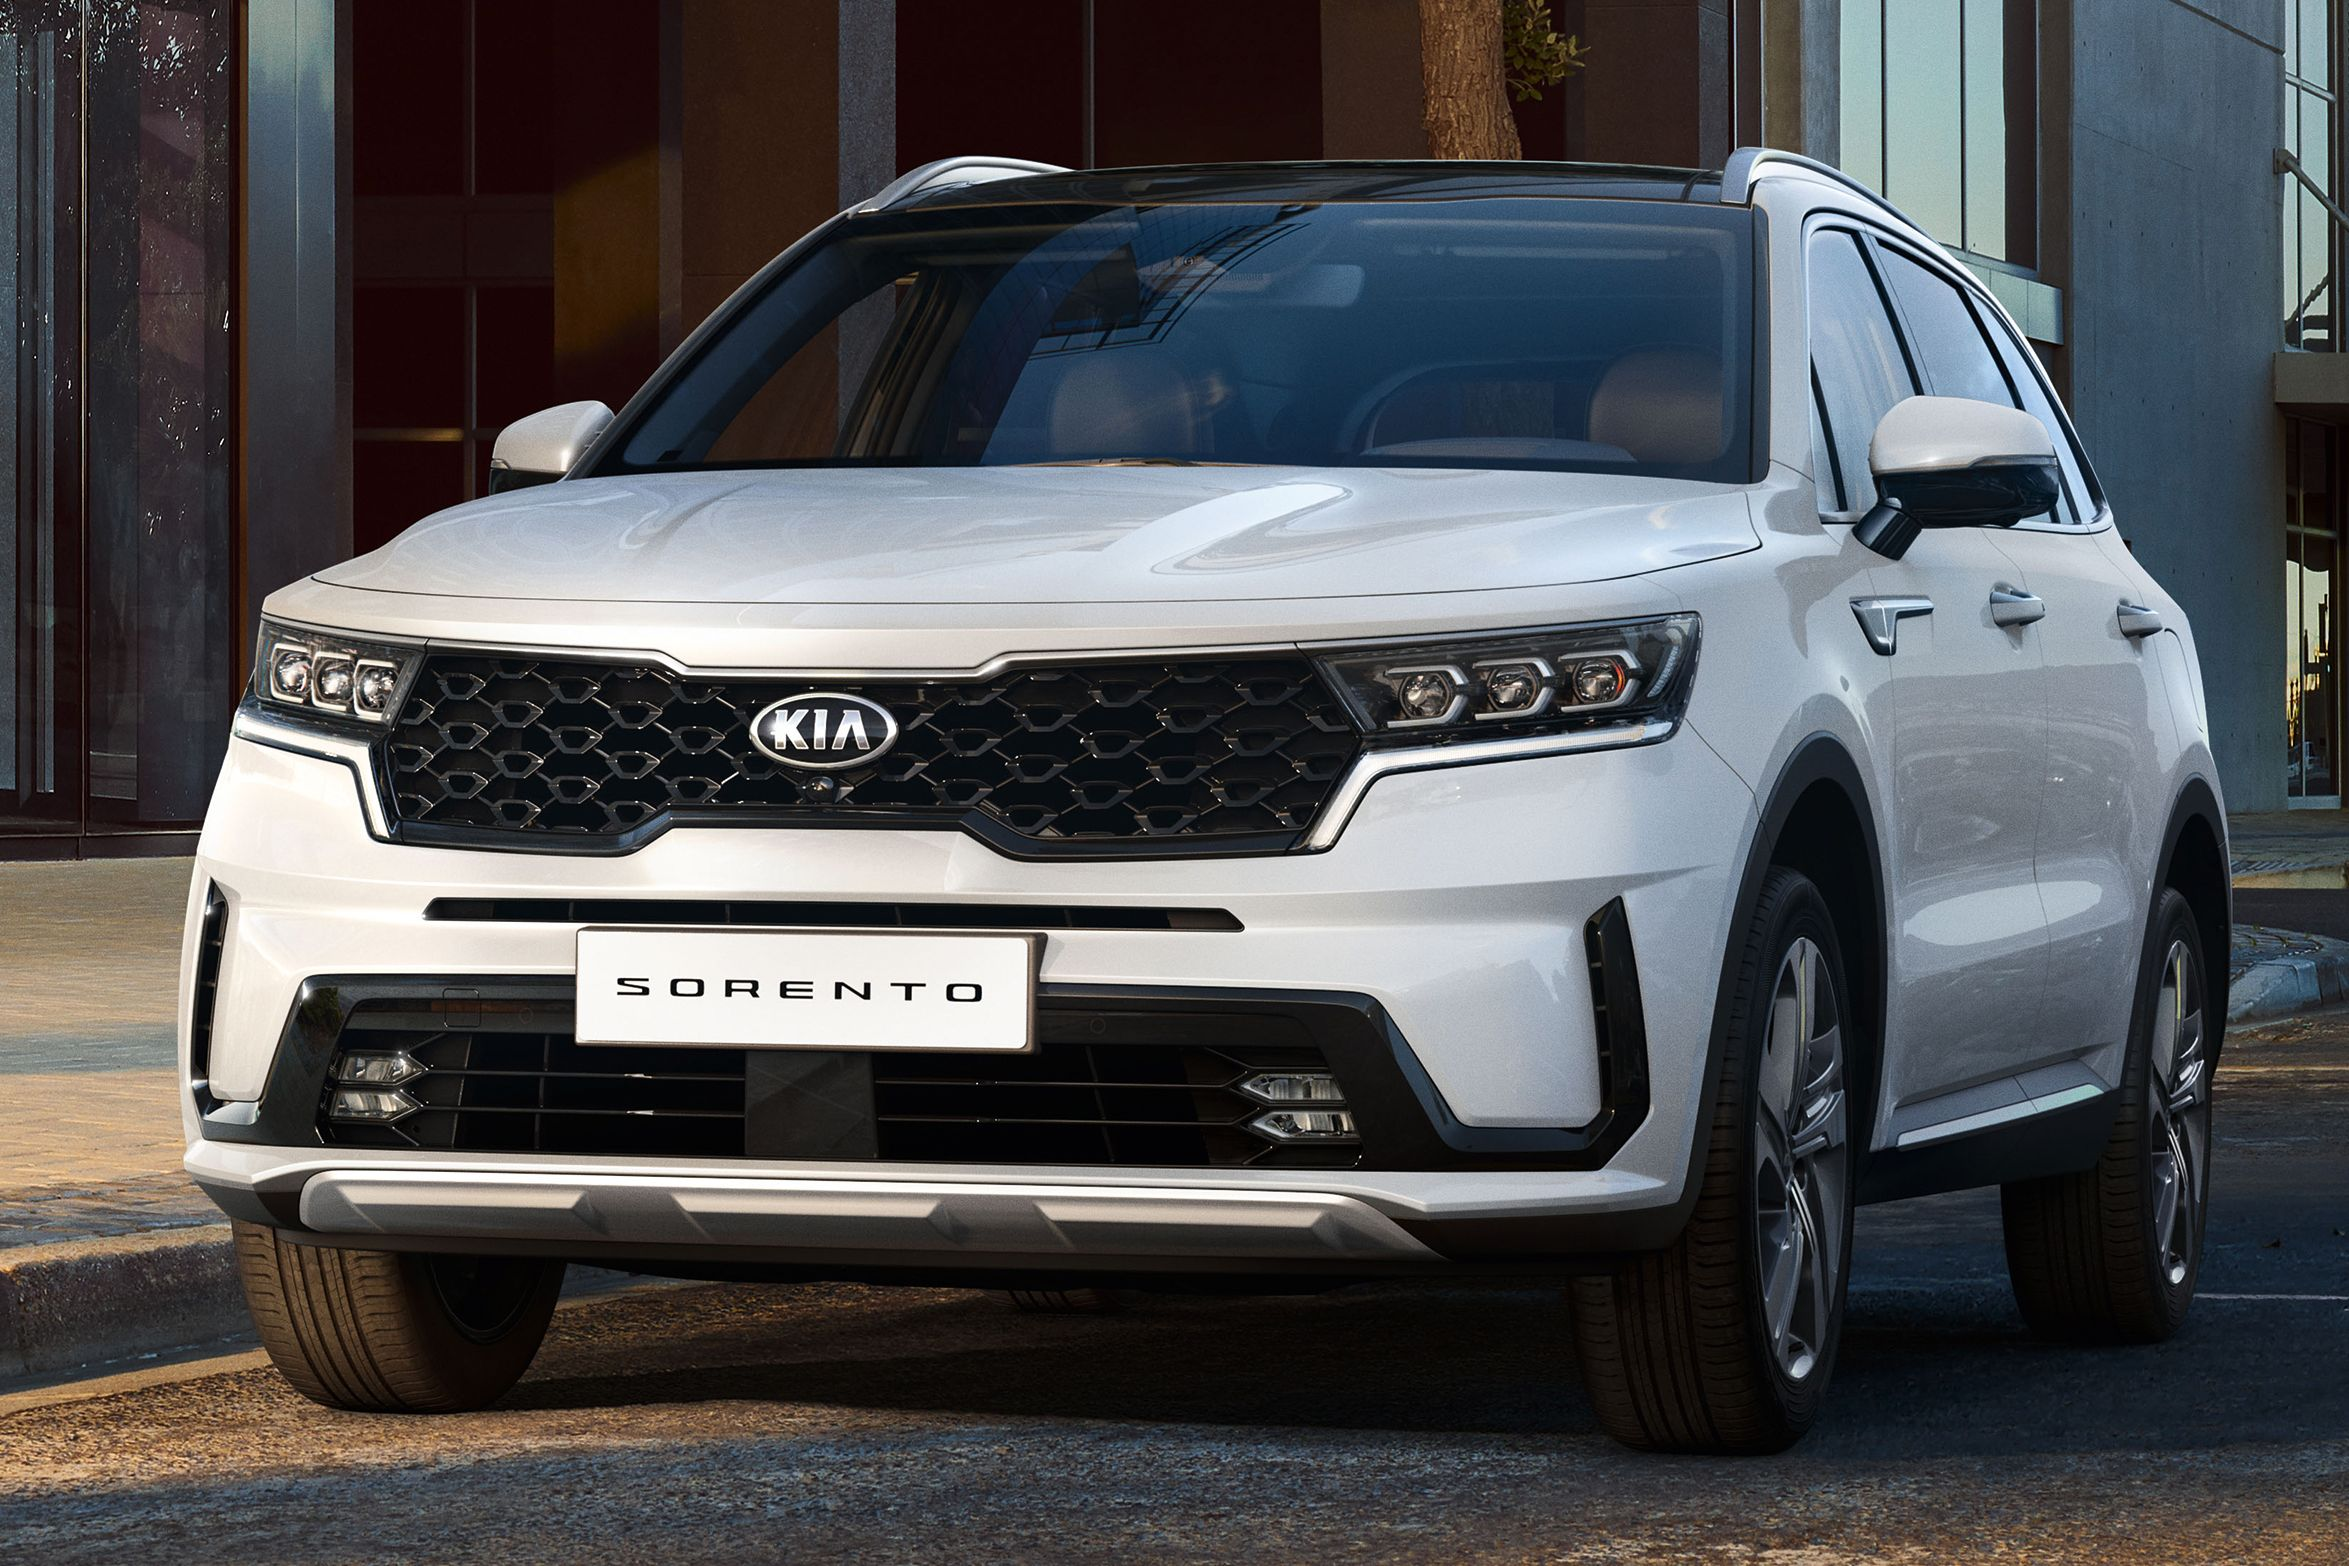 2021 Kia Sorento revealed in full - larger with more space ...